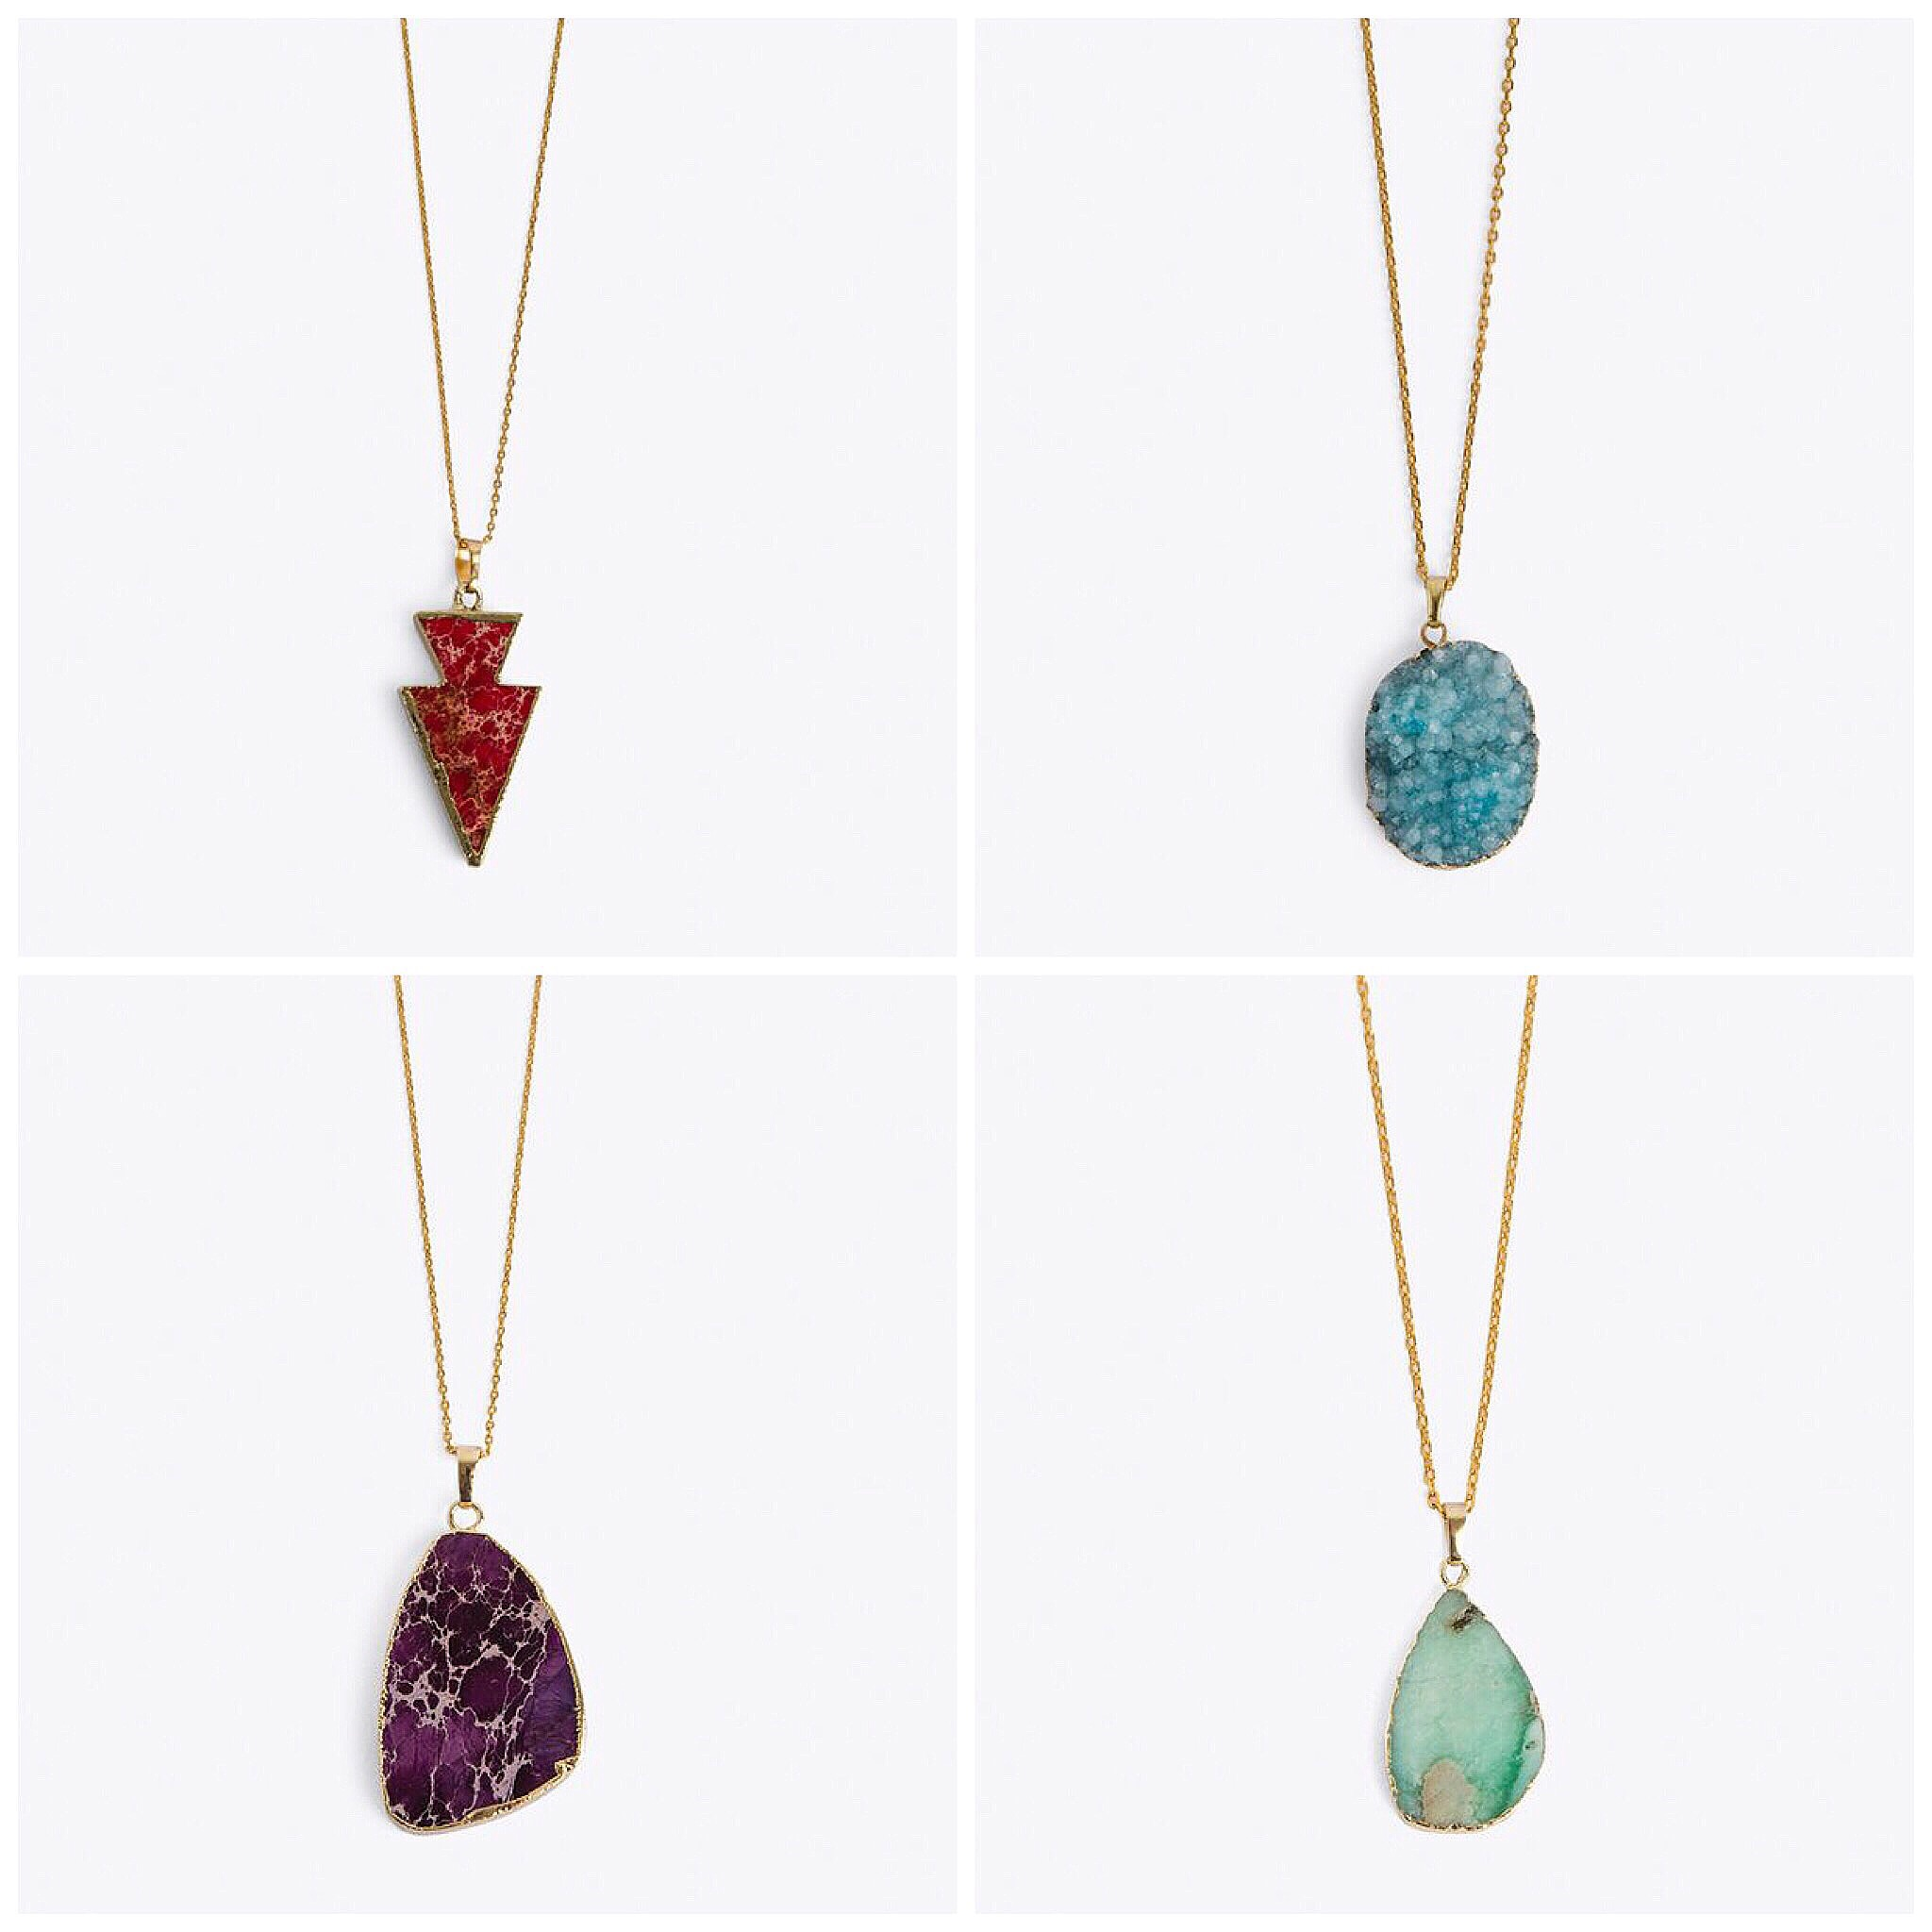 Some meaningful pendants from Iamfy.co